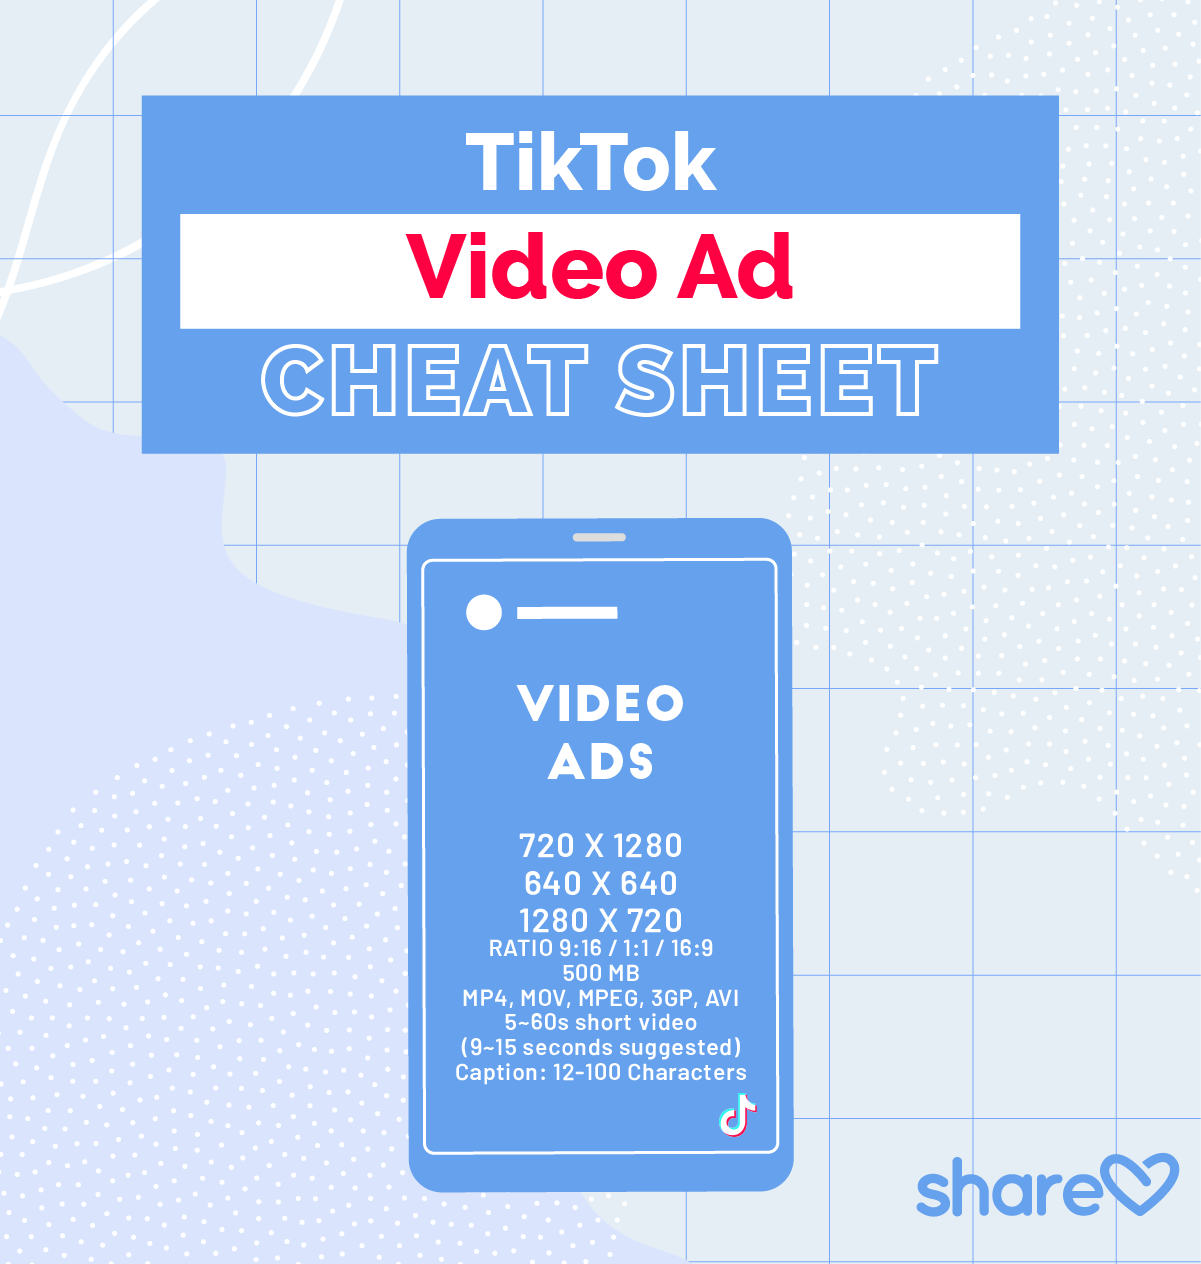 TikTok Ad Requirements And Spec Recommendations